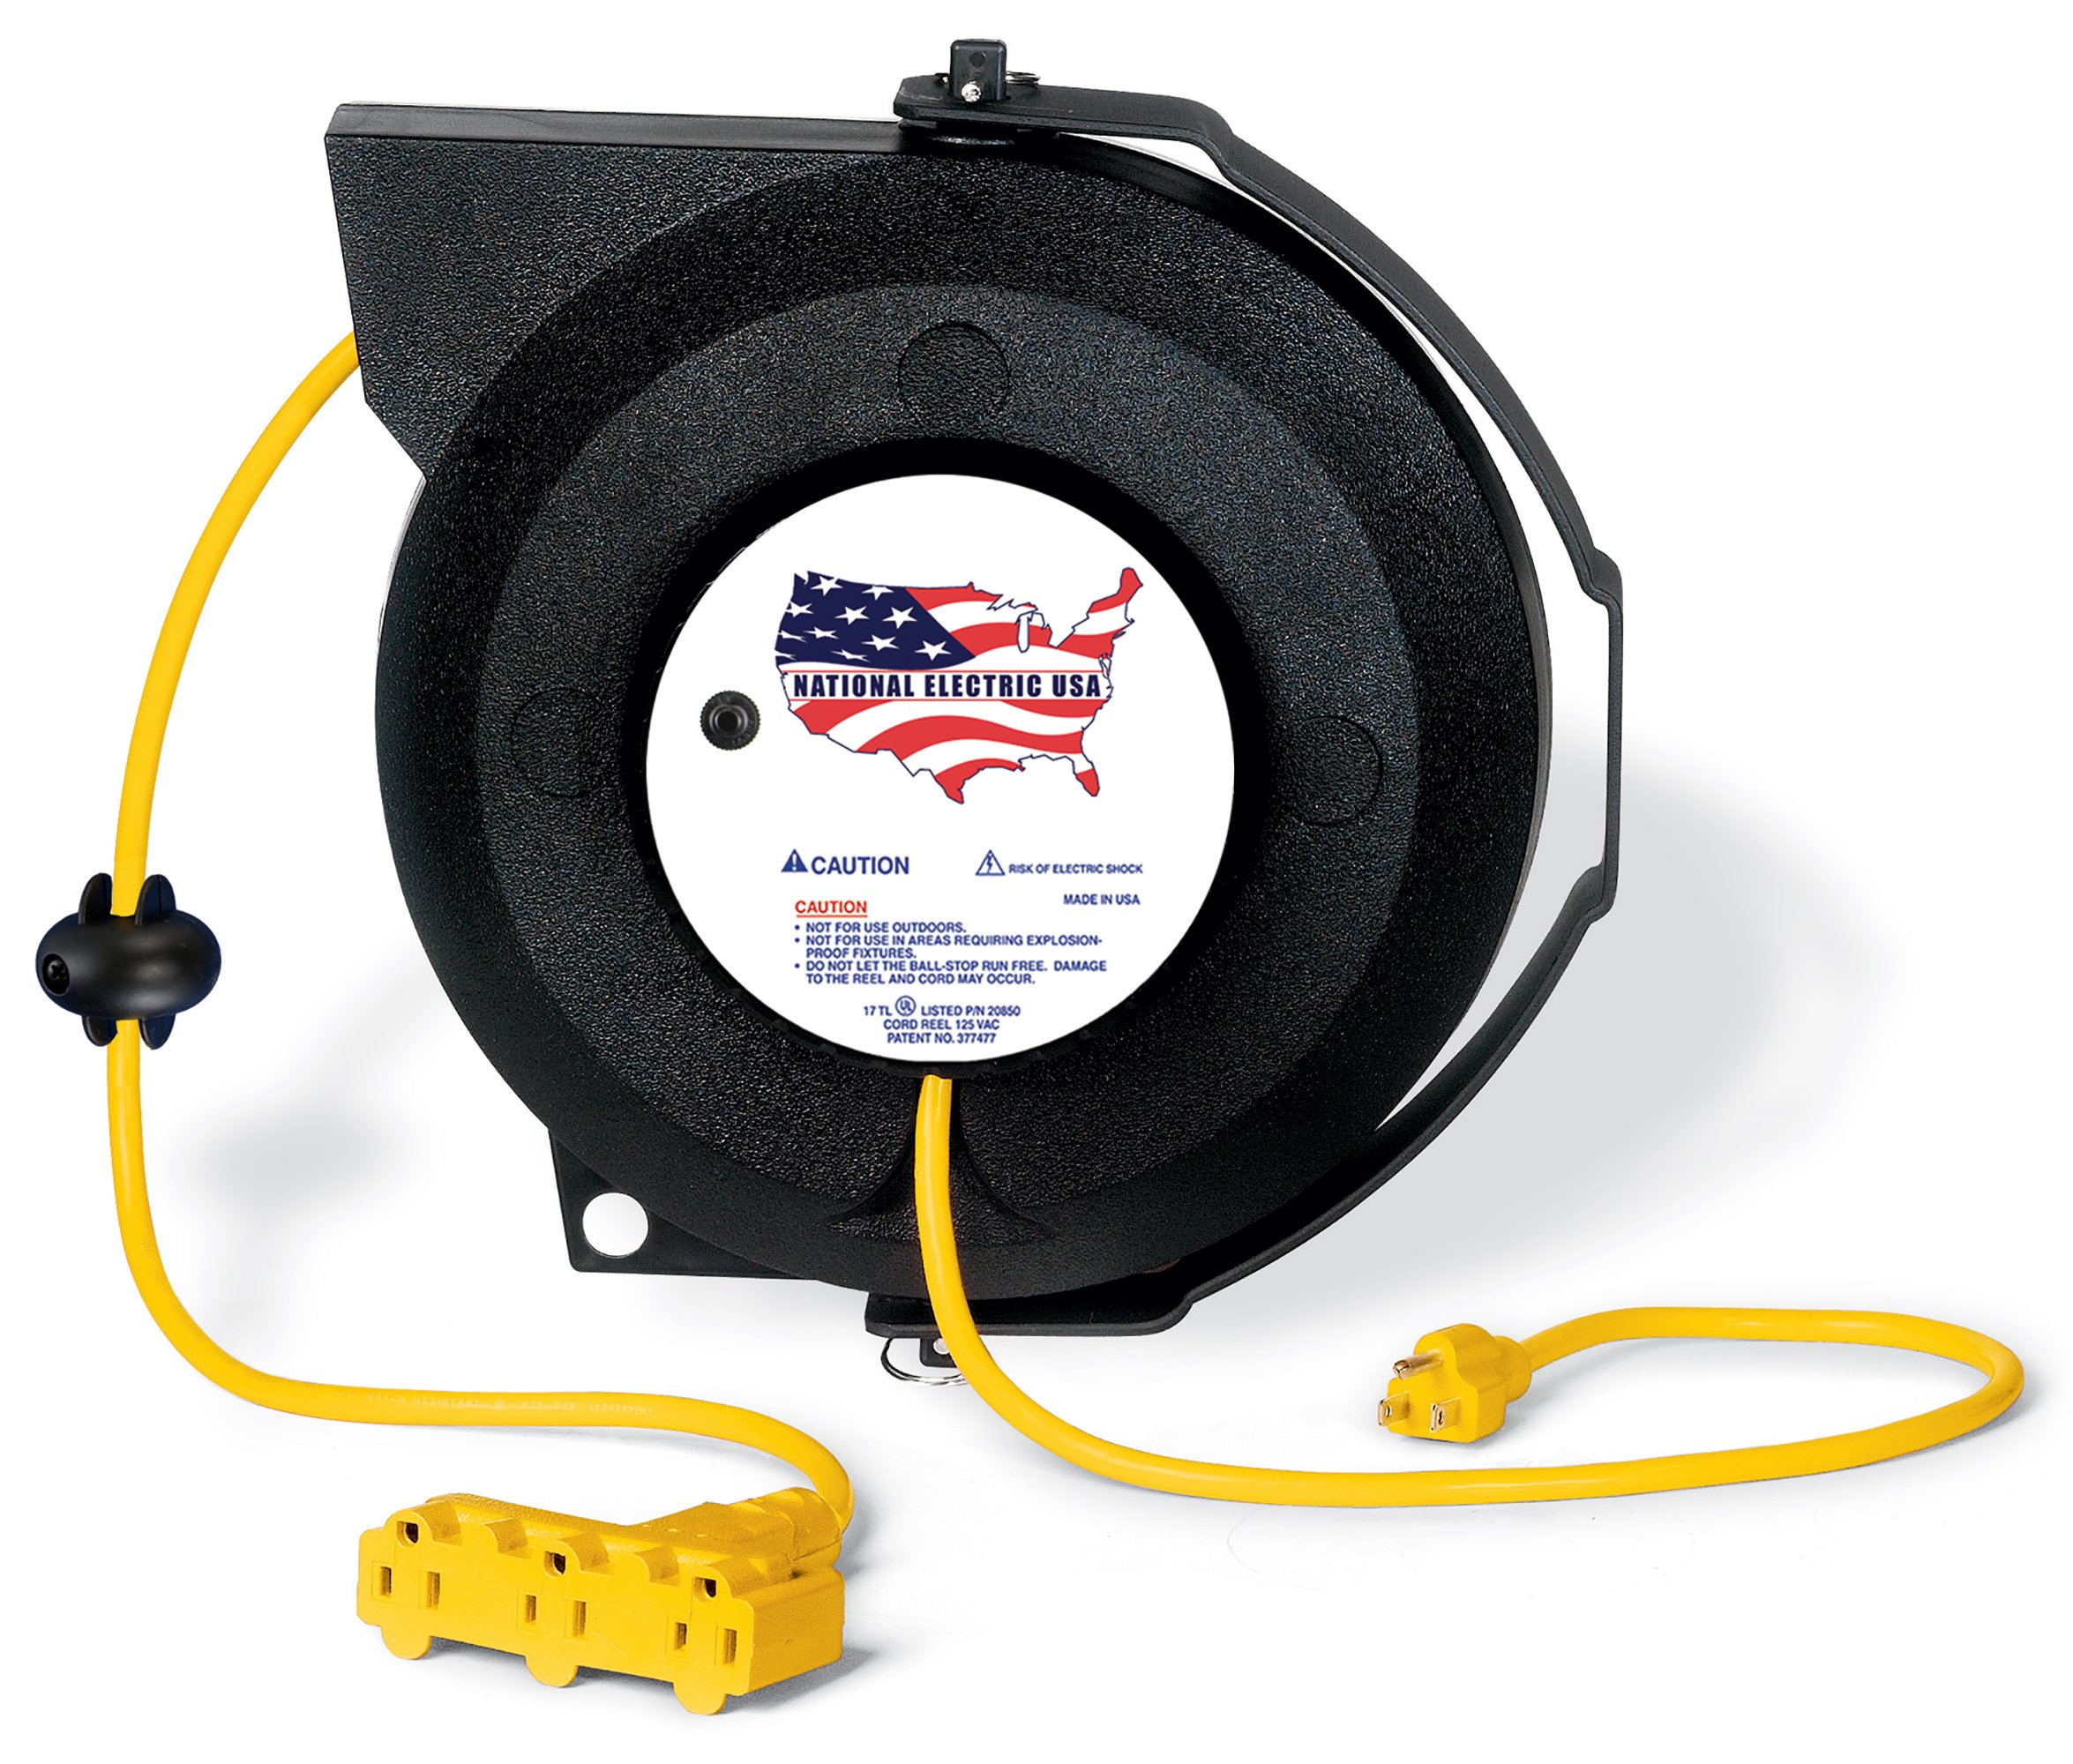 Extension Cord Reel 50 ft - Retractable Heavy Duty Tri-Tap 3-Outlet 16AWG 13A Breaker Reset UL Certified - Yellow